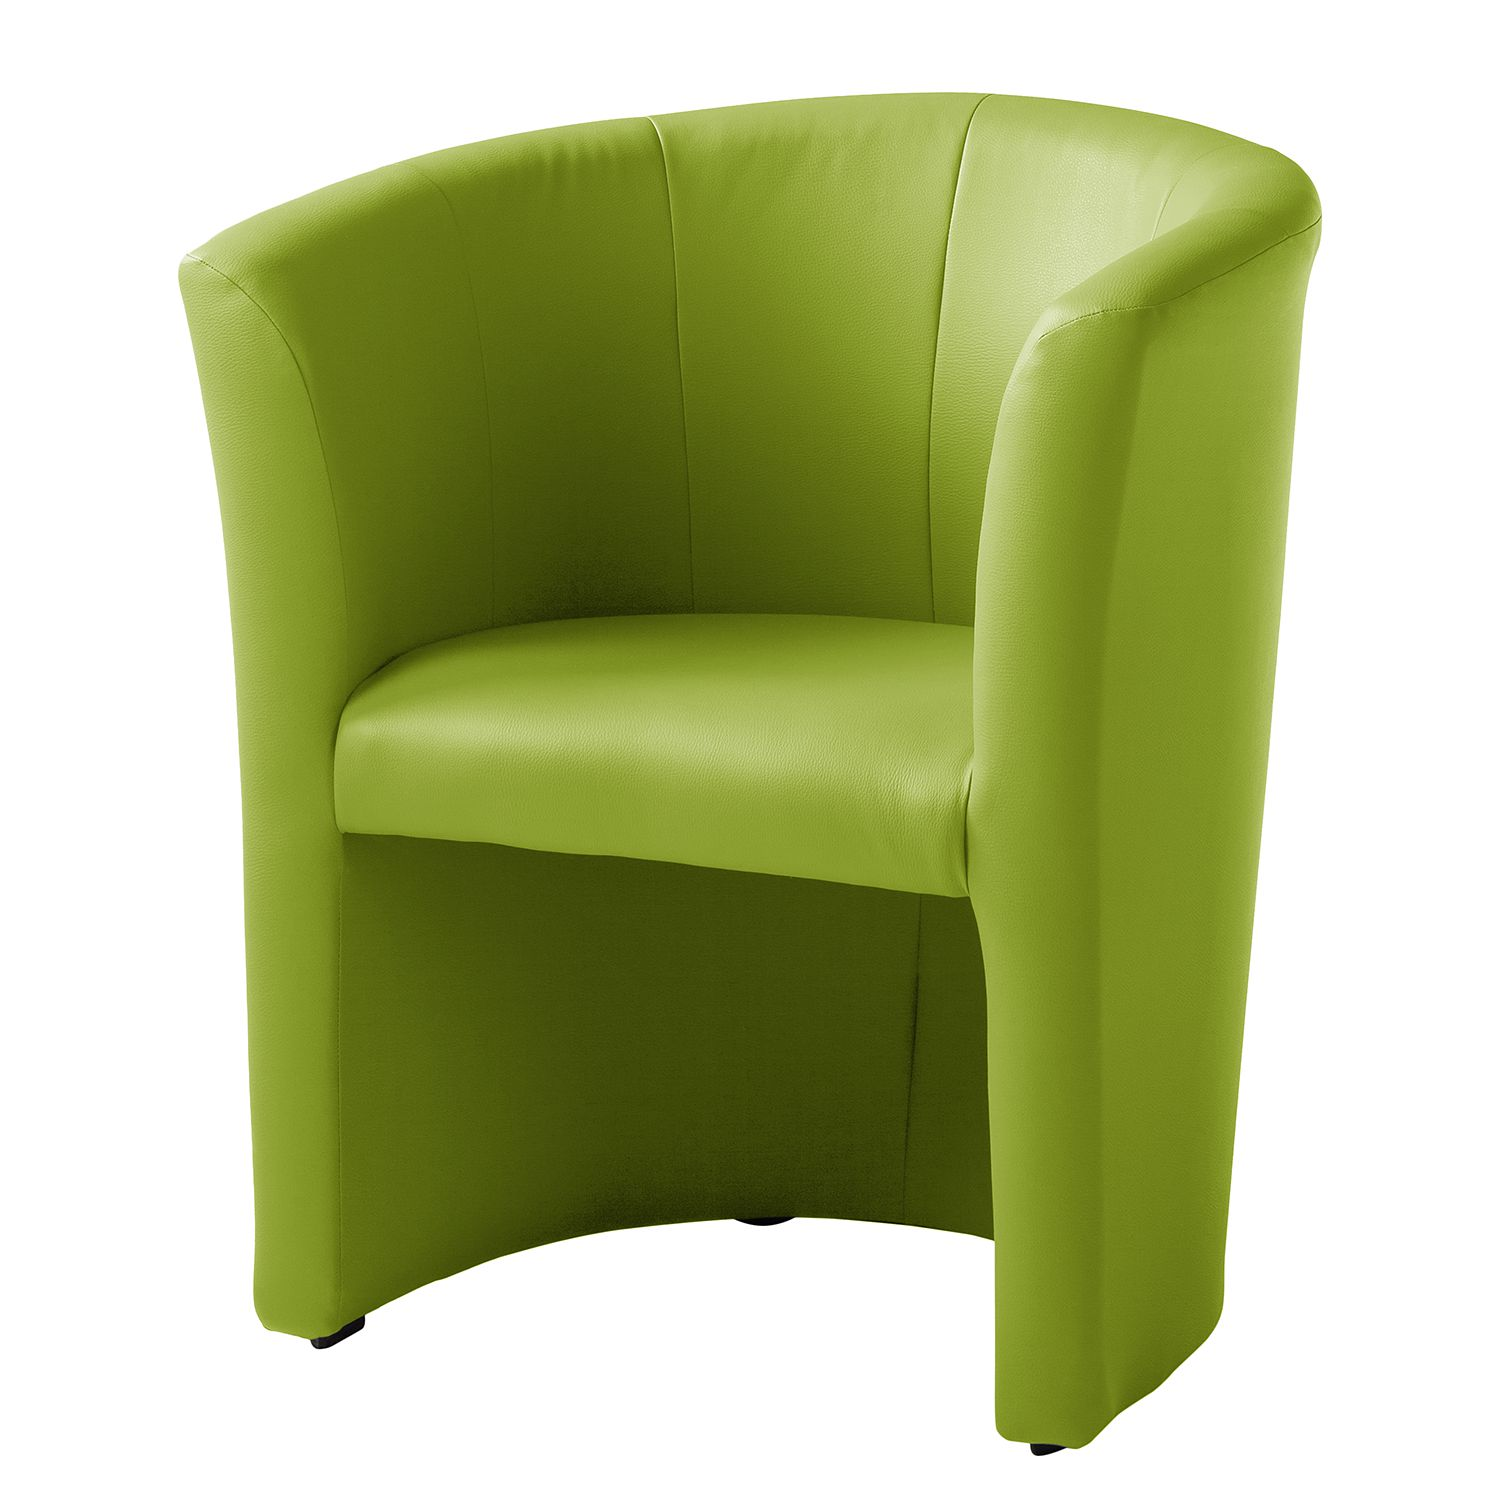 Fauteuil cocktail Wagait - Imitation cuir - Vert pomme, mooved